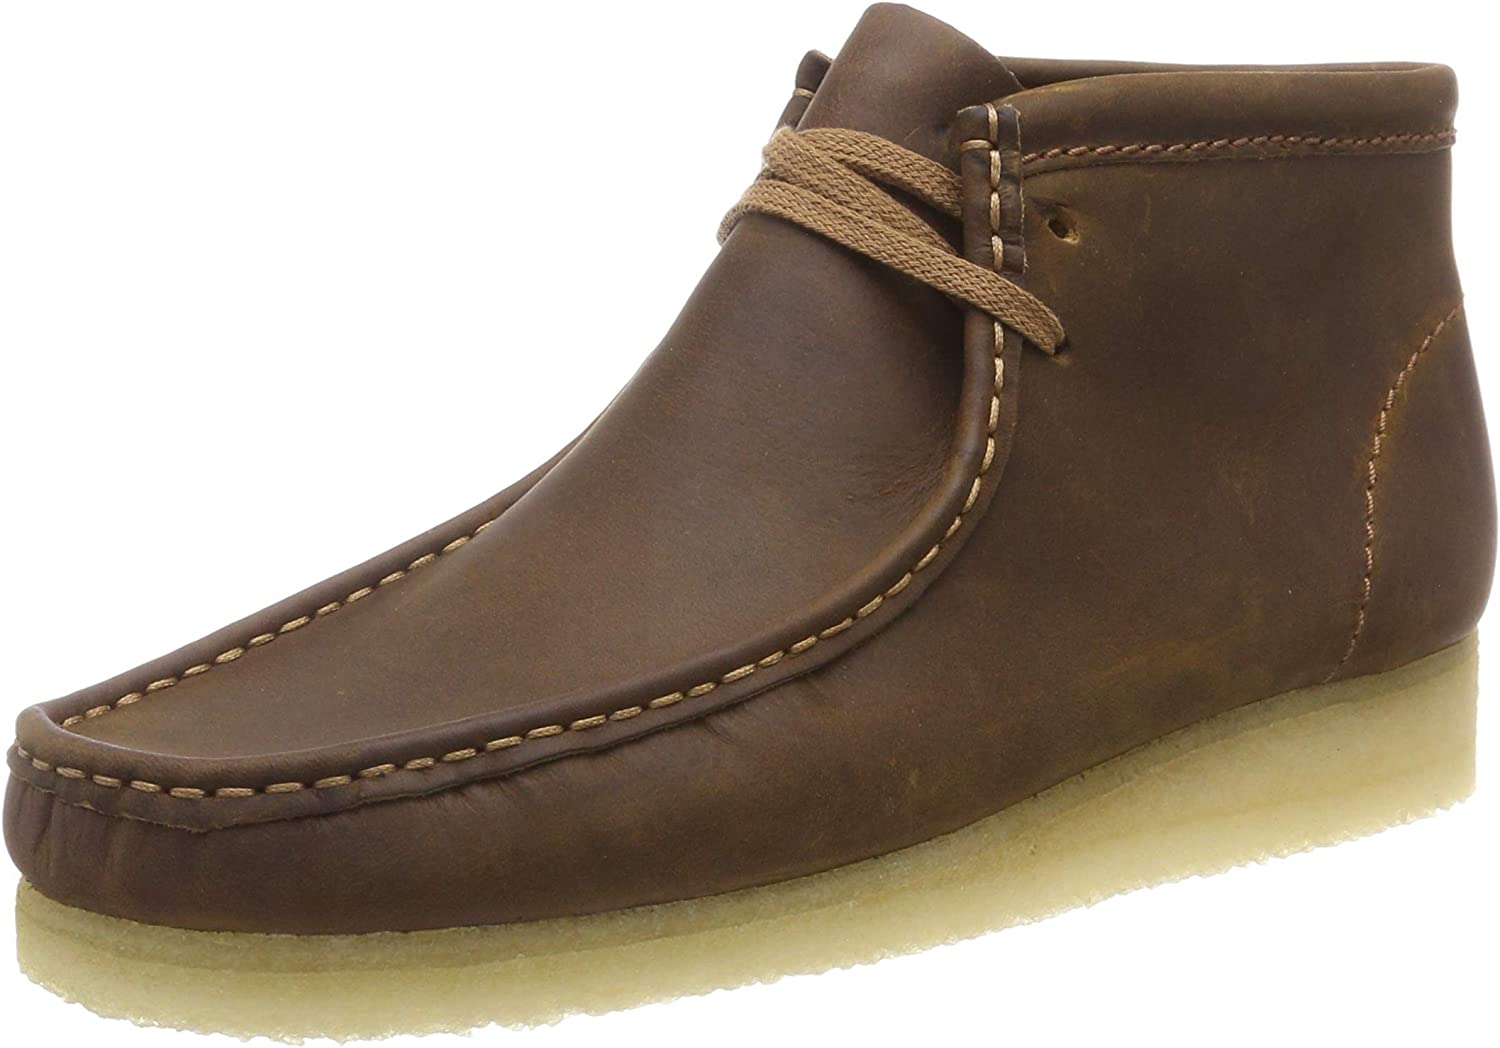 Clarks Originals Wallabee Boot, Botas Chukka para Hombre, Marrón (Beeswax Leather), 41.5 EU